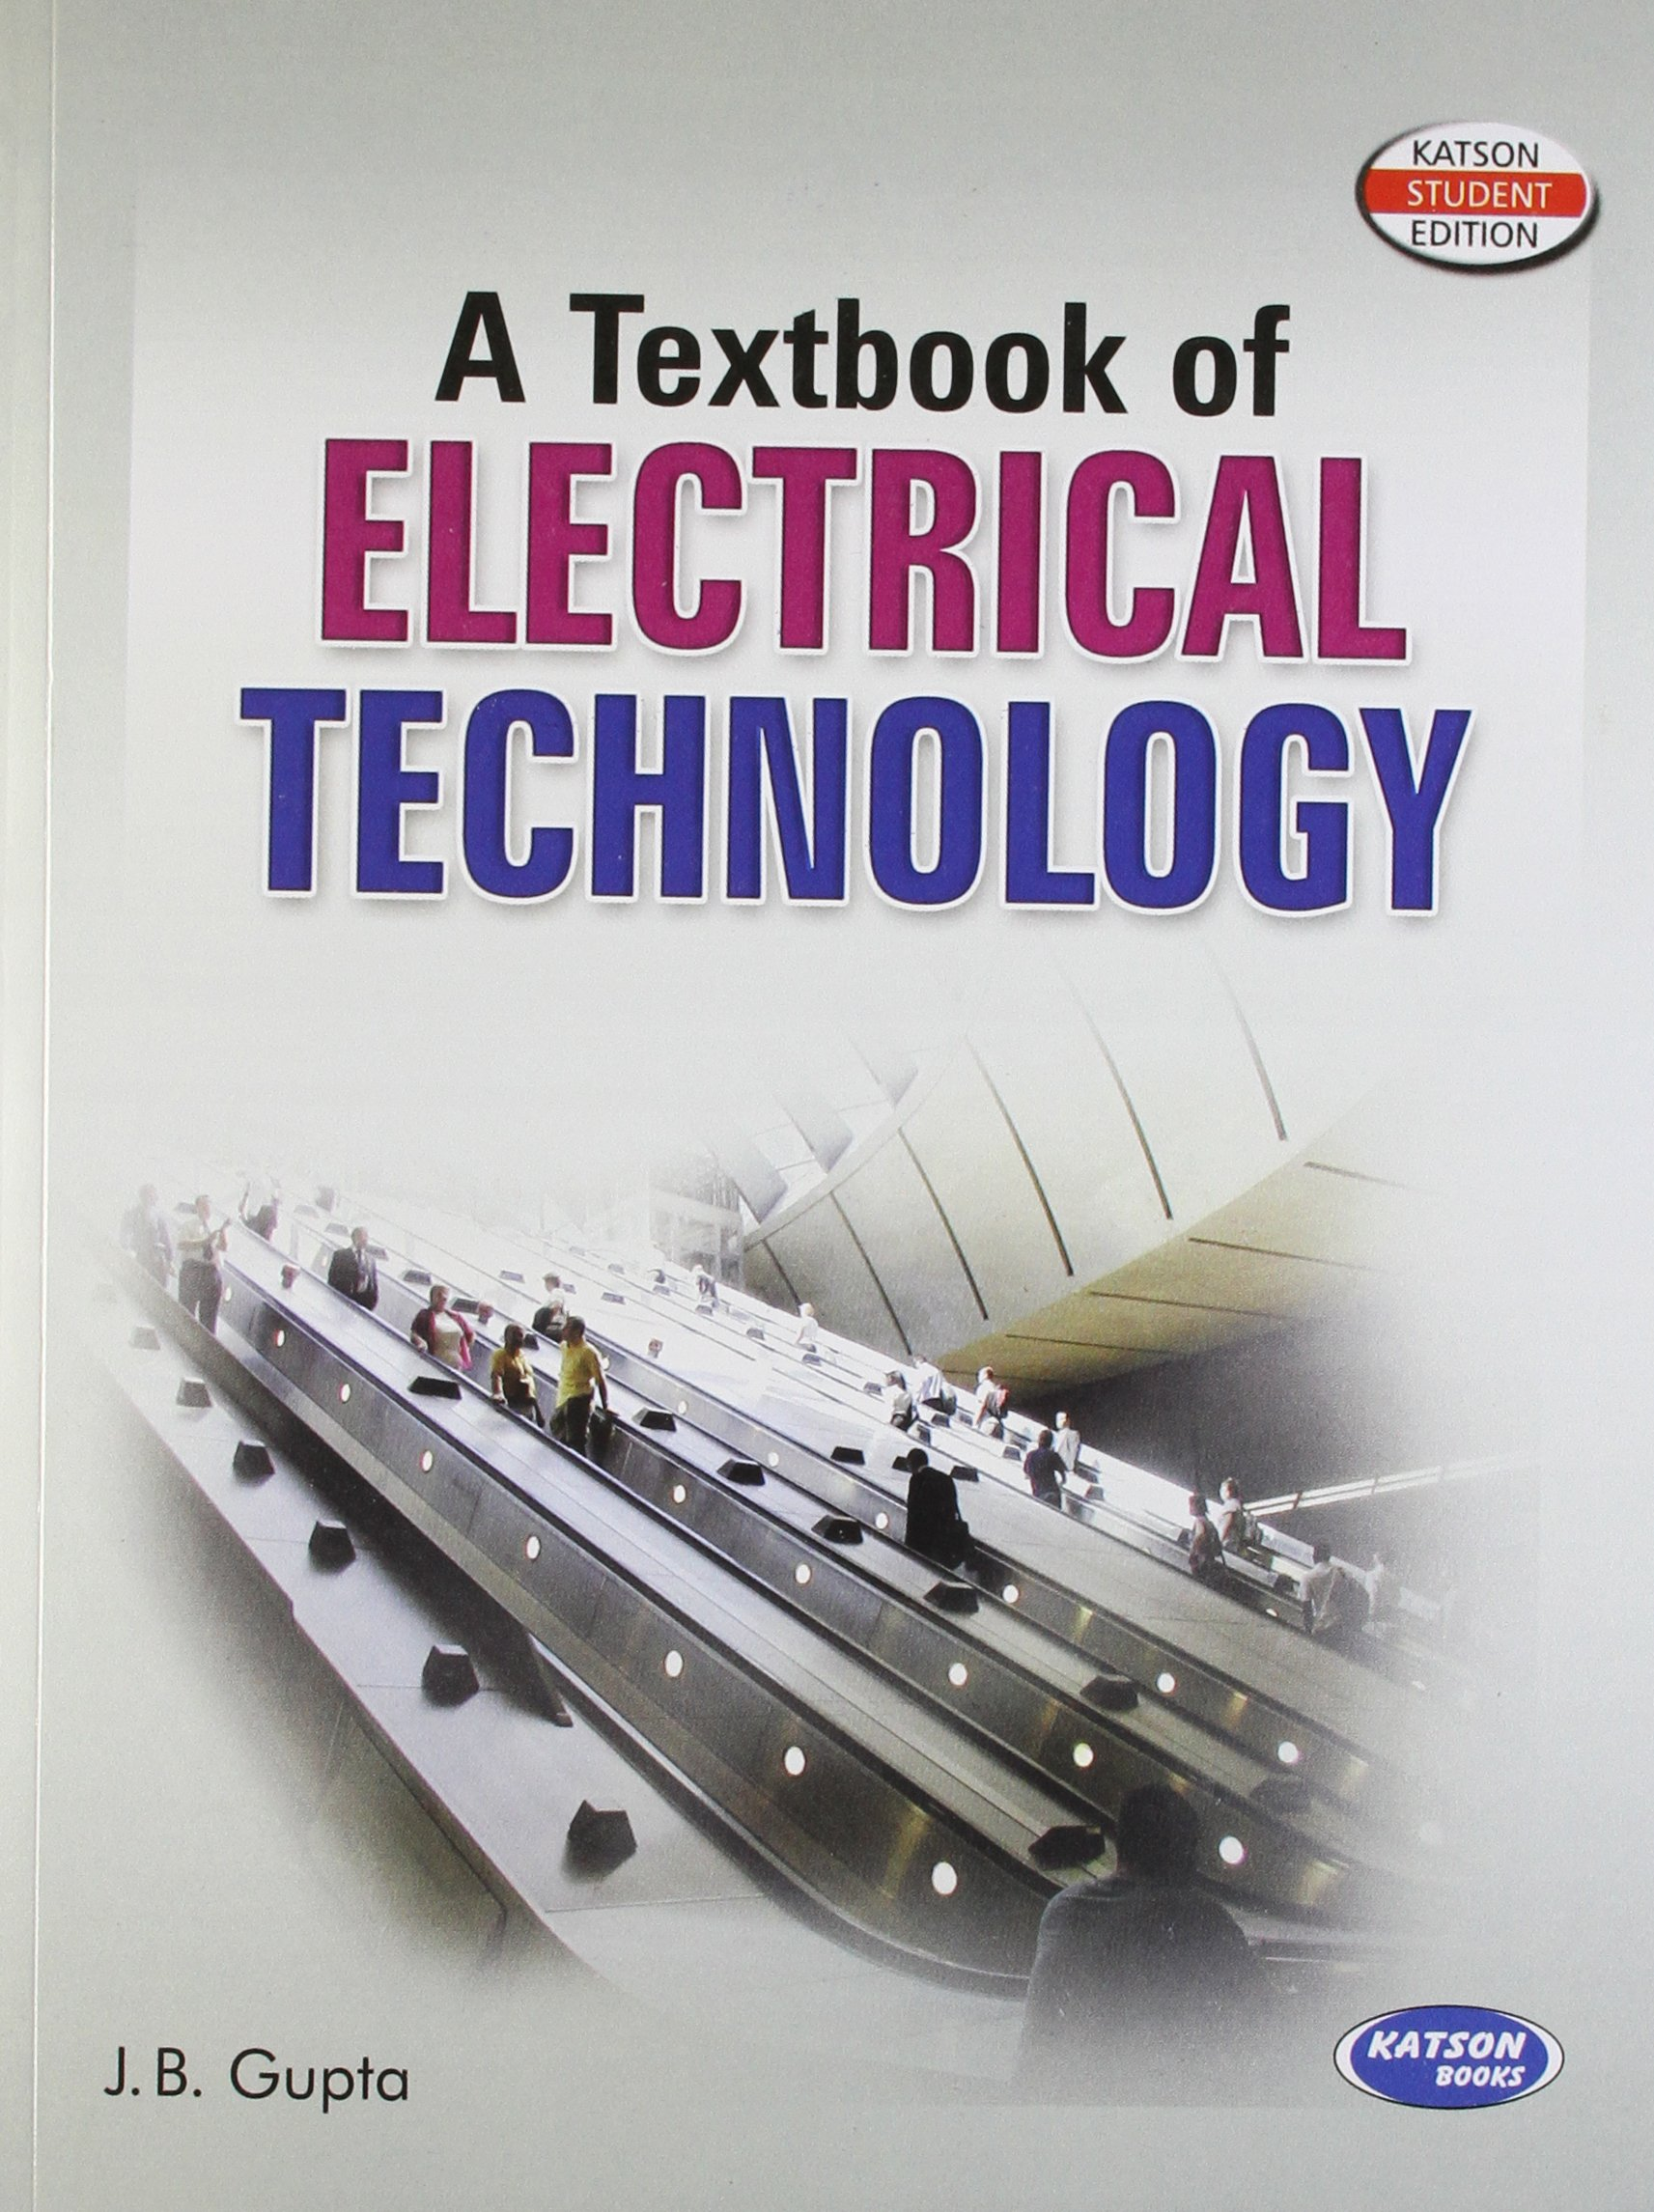 A Textbook Of Electrical Technology MDU JB Gupta 9789380027623 Amazon Books